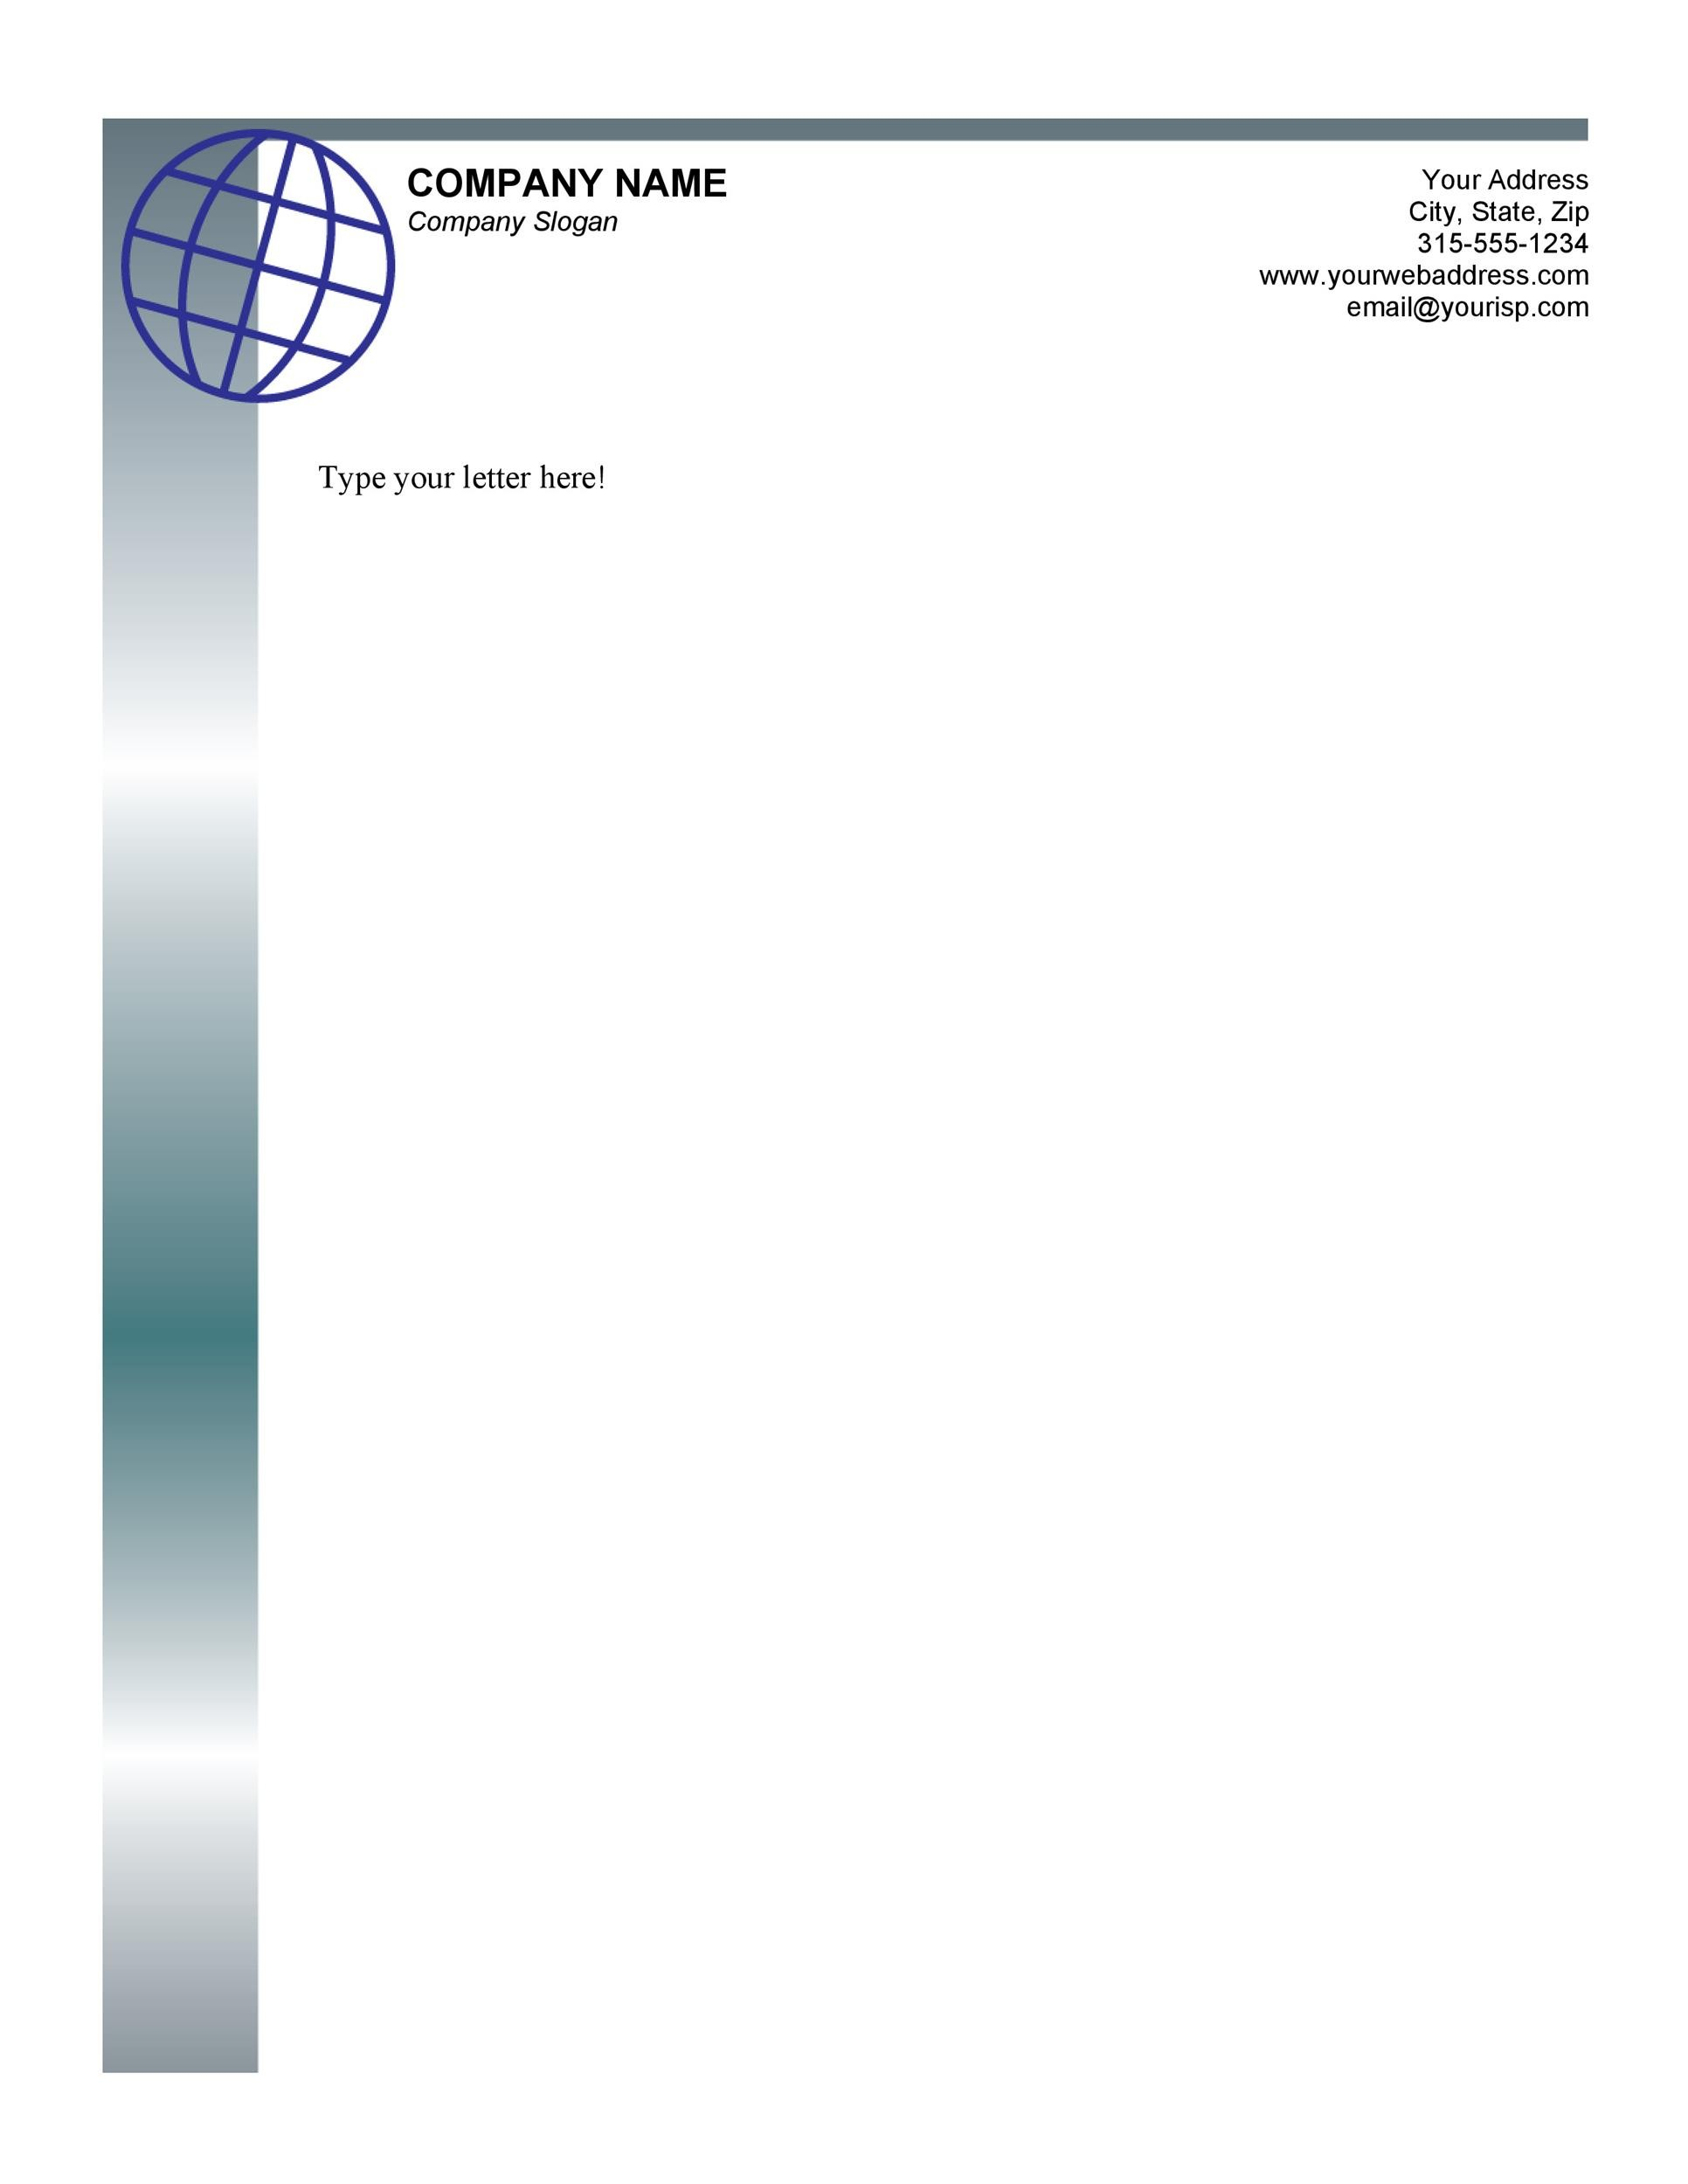 High Quality Printable Letterhead Template 03 Ideas Free Business Letterhead Templates For Word